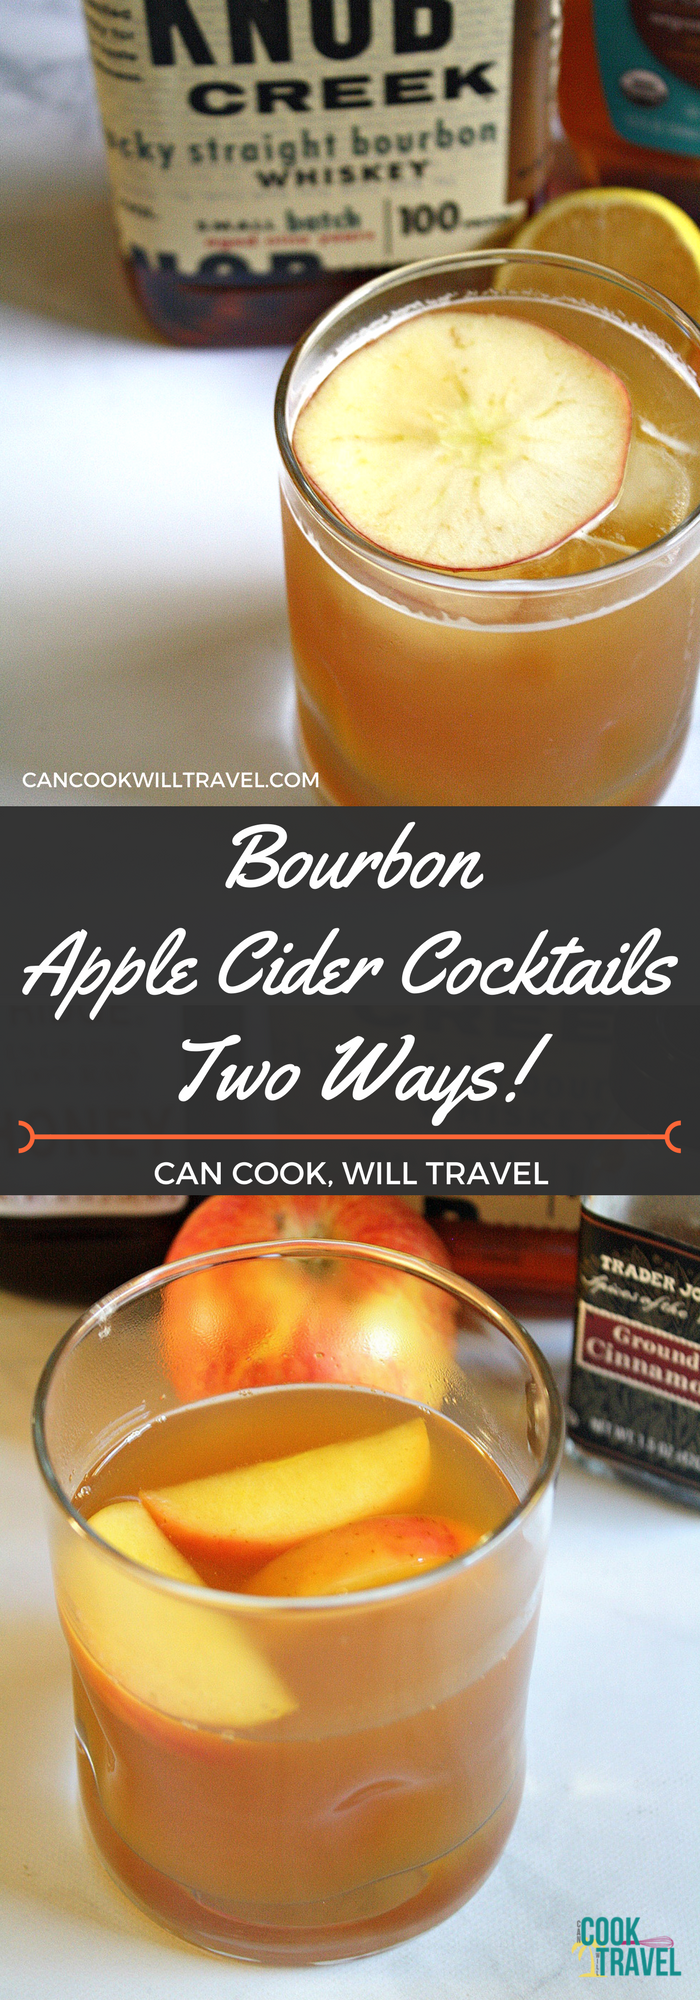 Bourbon Apple Cider Cocktails Two Ways_Collage1